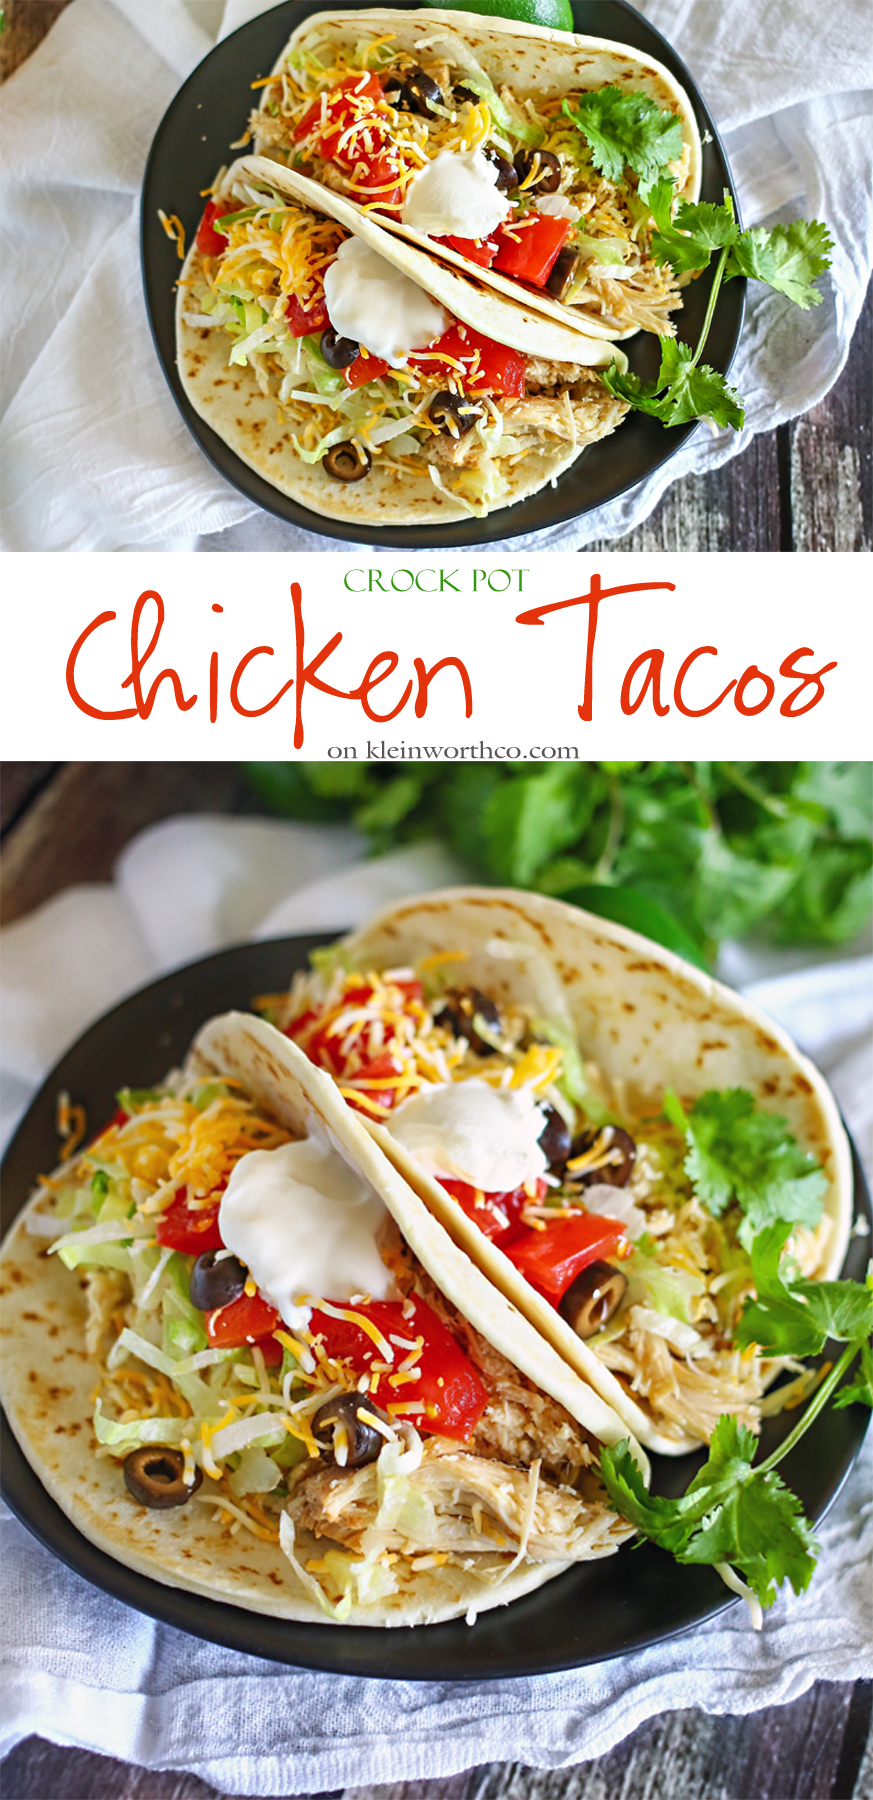 Crock Pot Chicken Tacos Easy Family Dinner Ideas Kleinworth Co